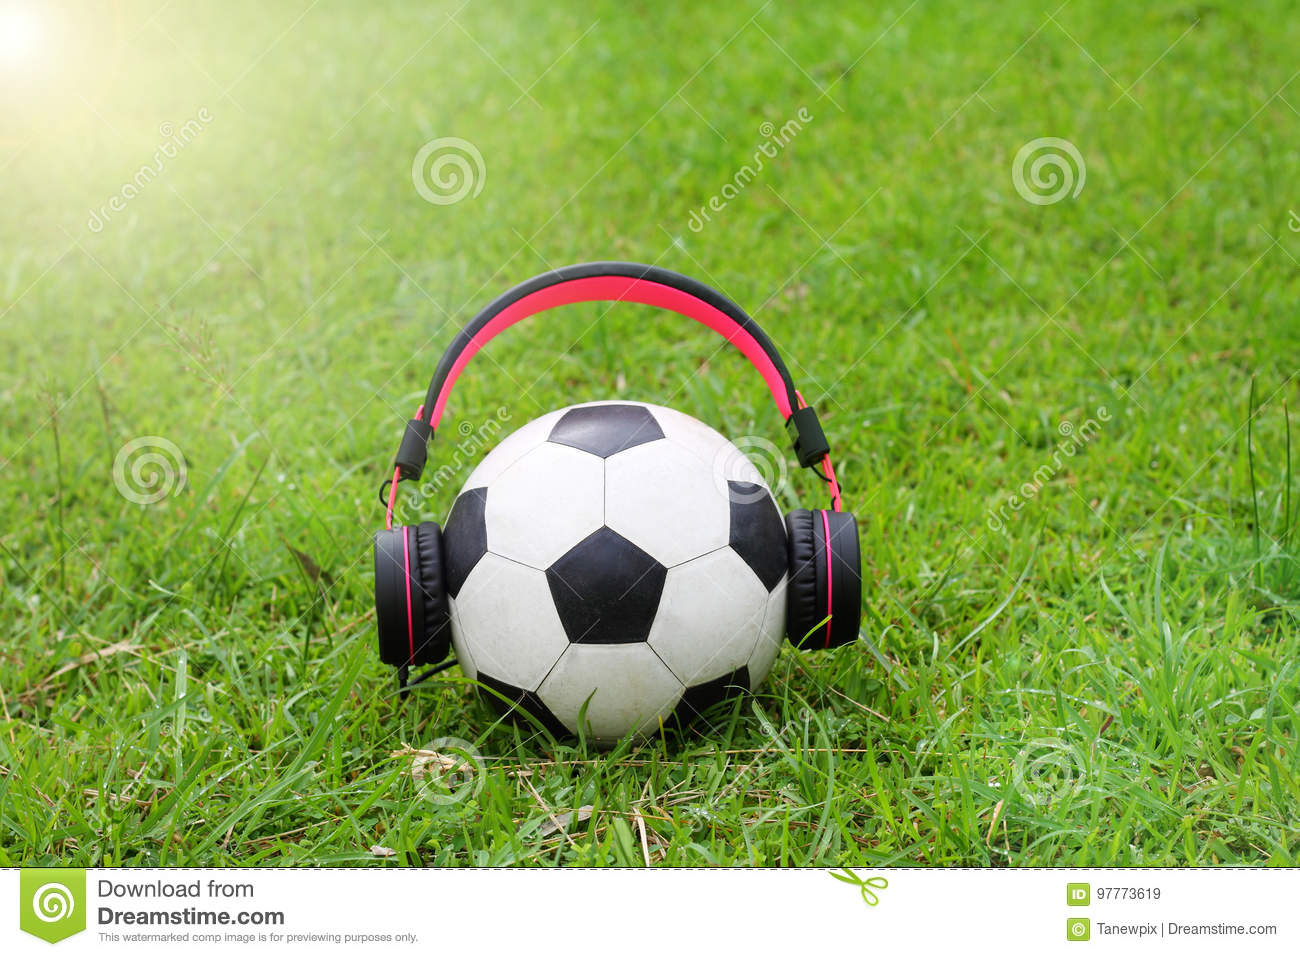 Funny Football Music On Green Grass Background Stock Image - Image